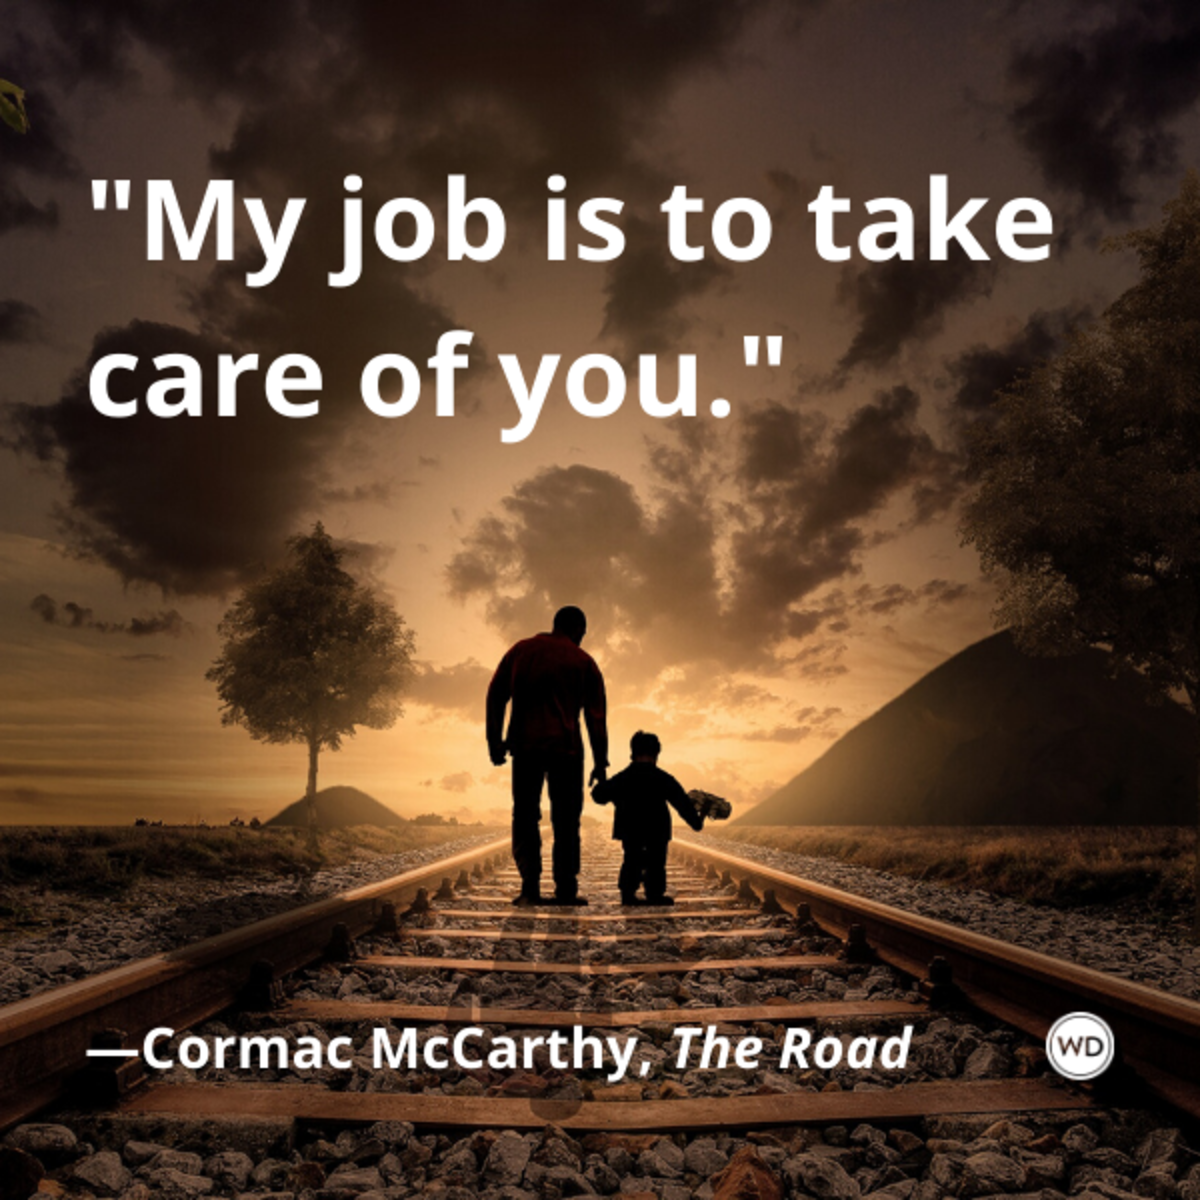 cormac_mccarthy_the_road_quotes_my_job_is_to_take_care_of_you